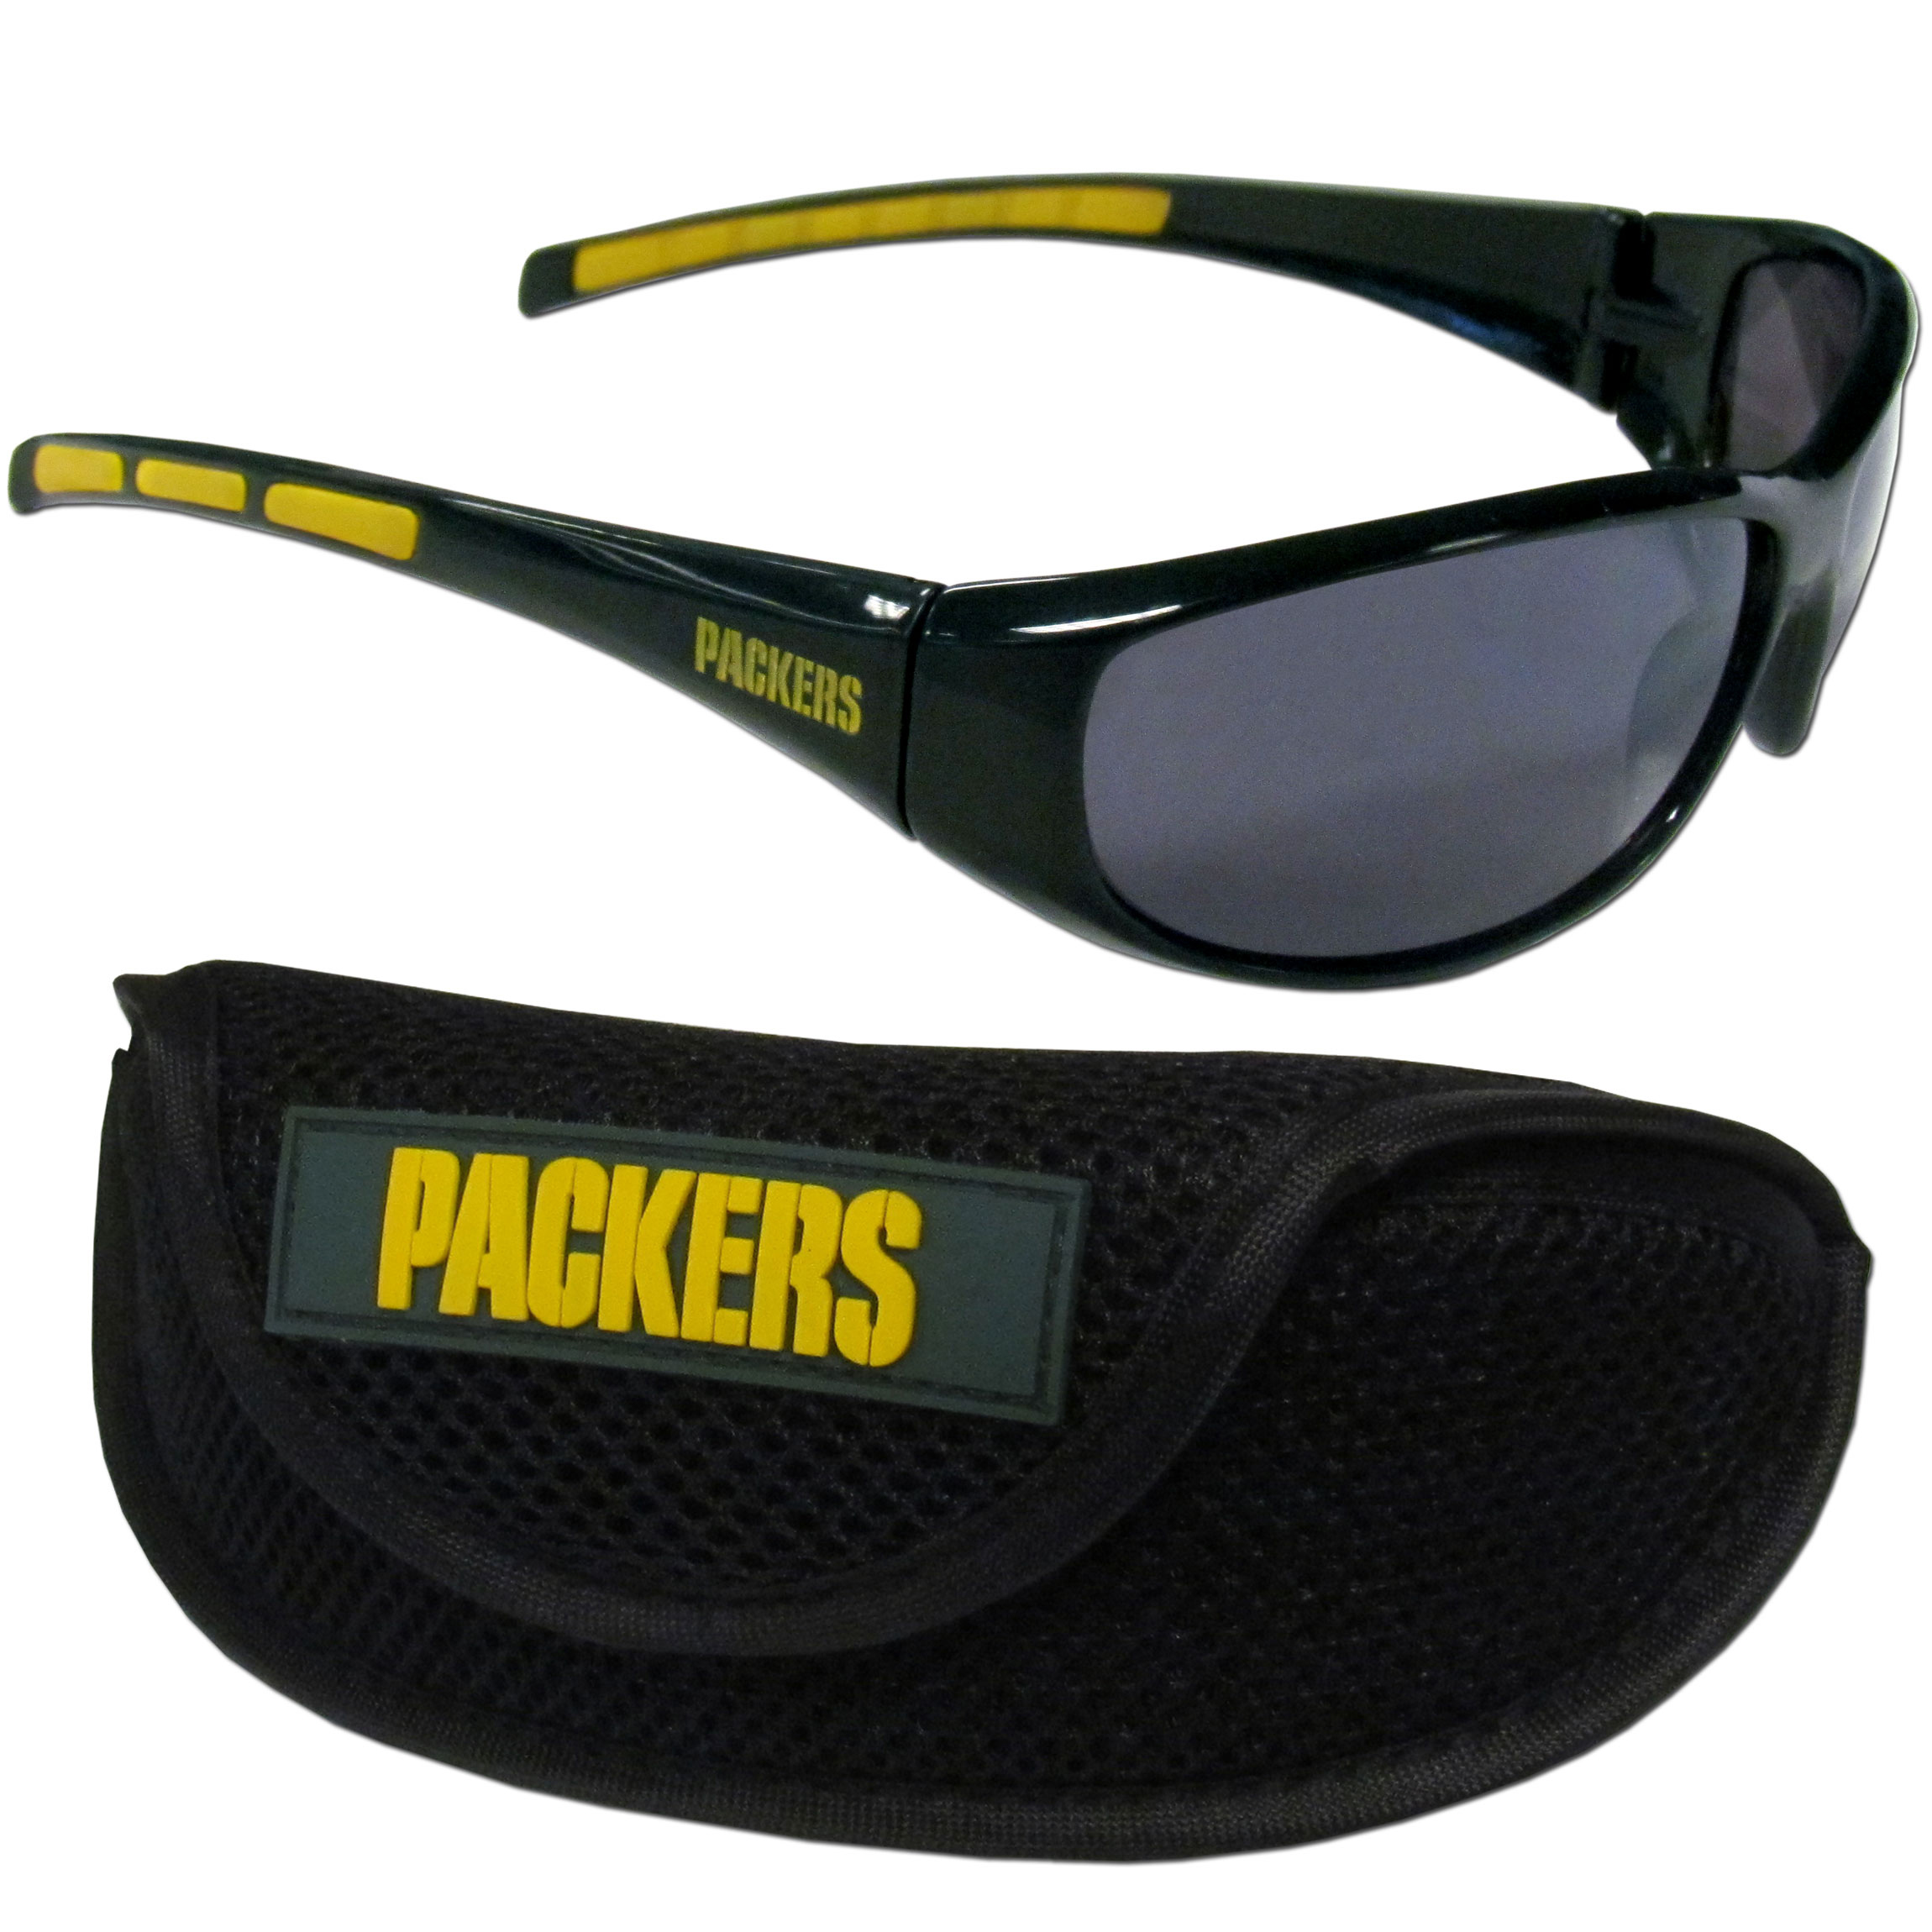 Green Bay Packers Wrap Sunglass and Case Set - This great set includes a high quality pair of Green Bay Packers wrap sunglasses and sport carrying case.